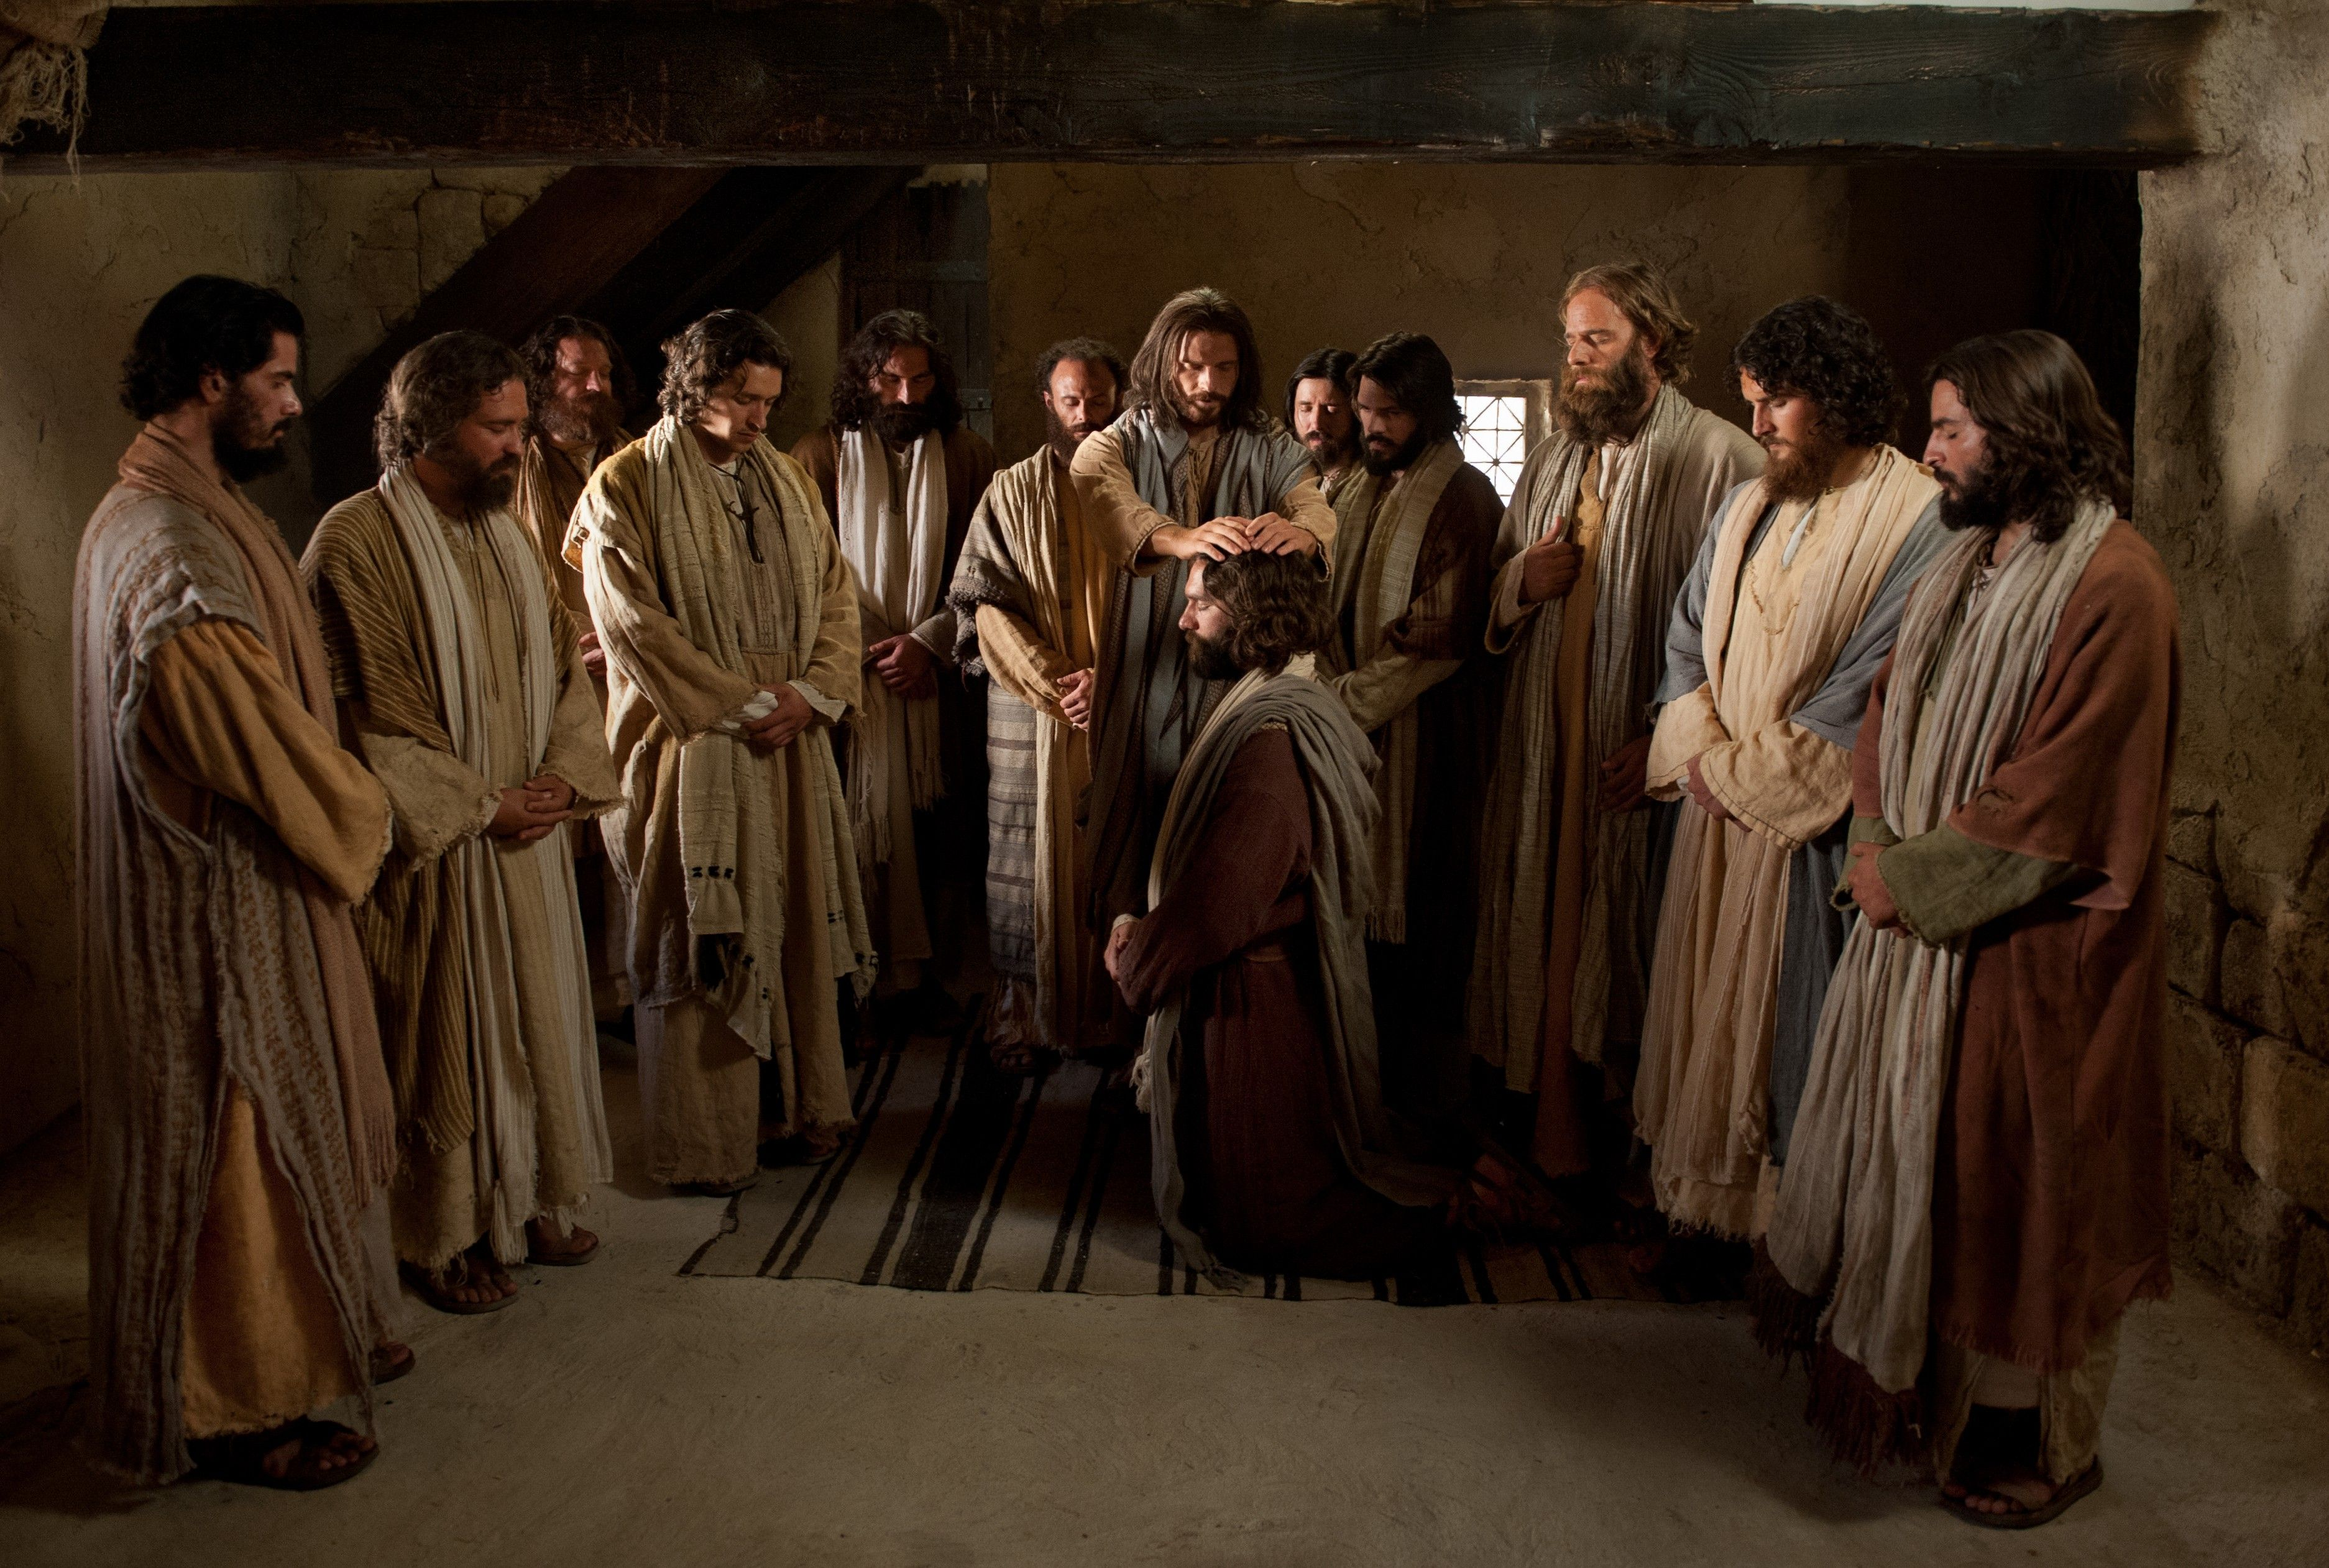 Christ ordaining and setting apart His twelve Apostles.